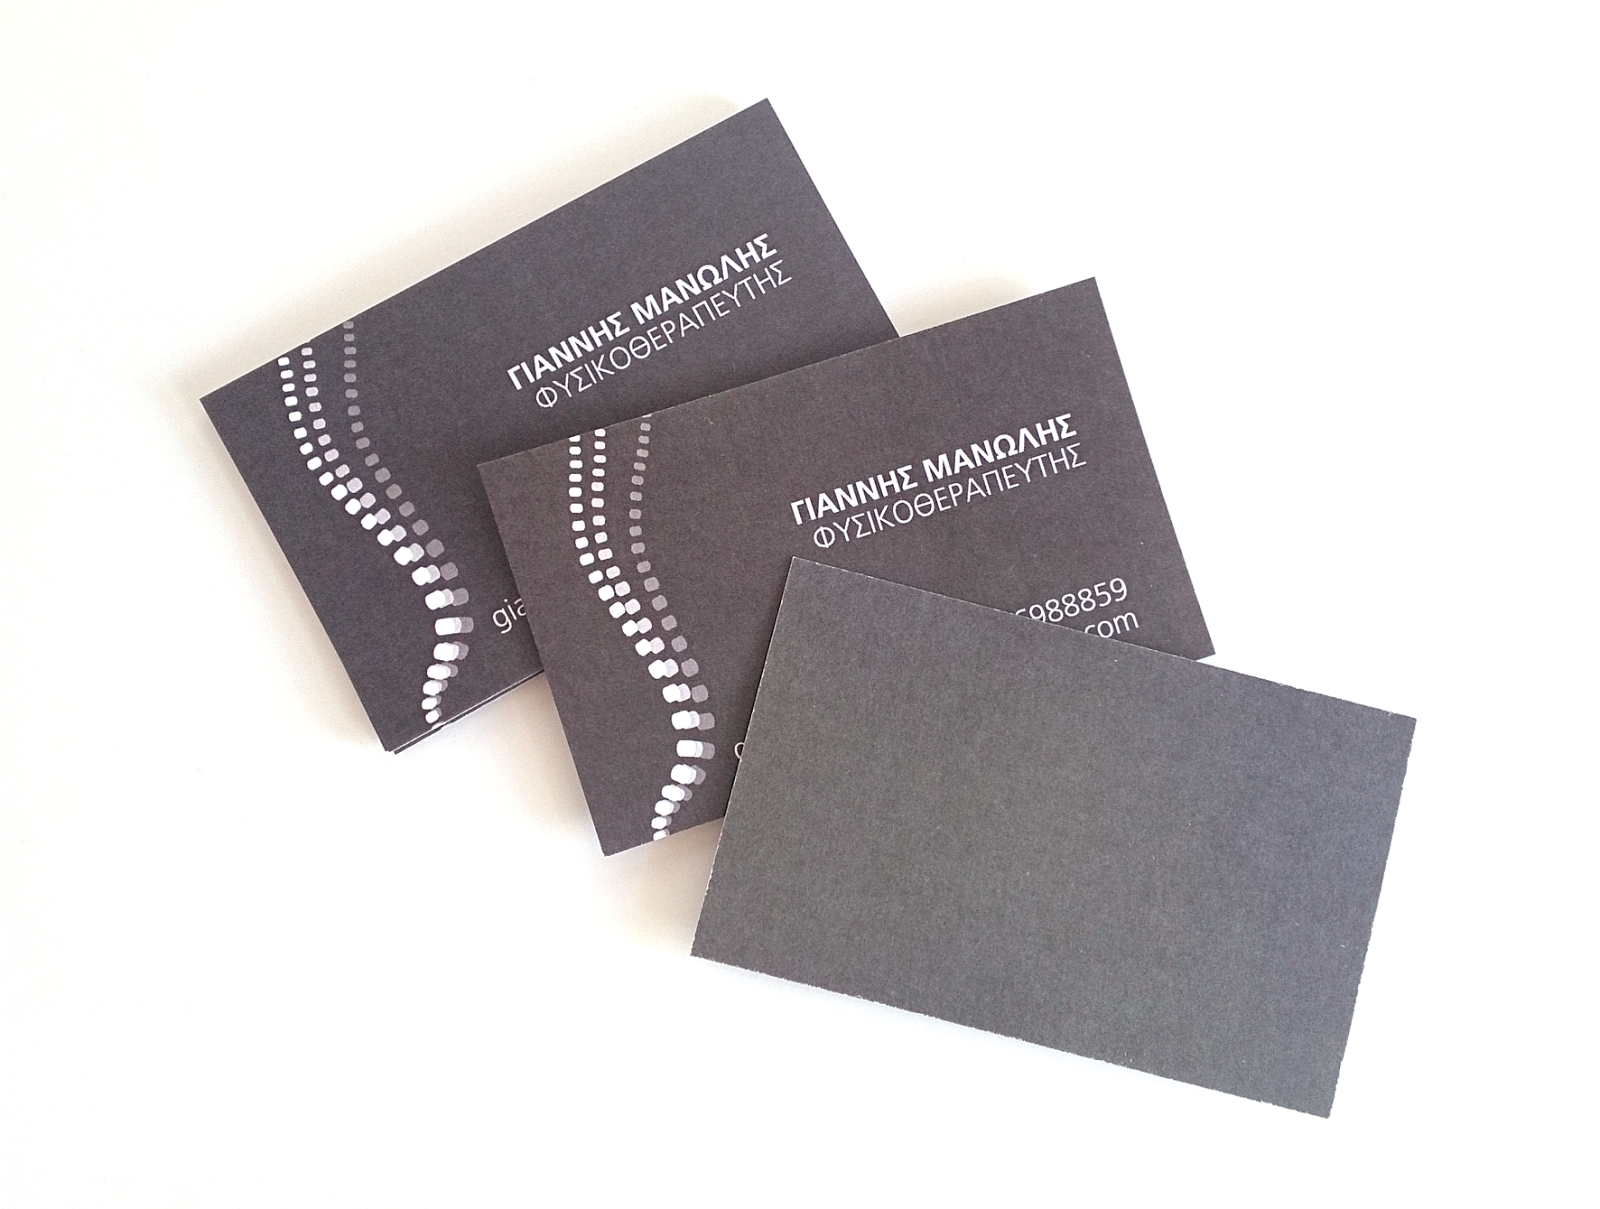 physiotherapy business cards by natasha pappa via behance sophie0610 pot com physiotherapist card 2